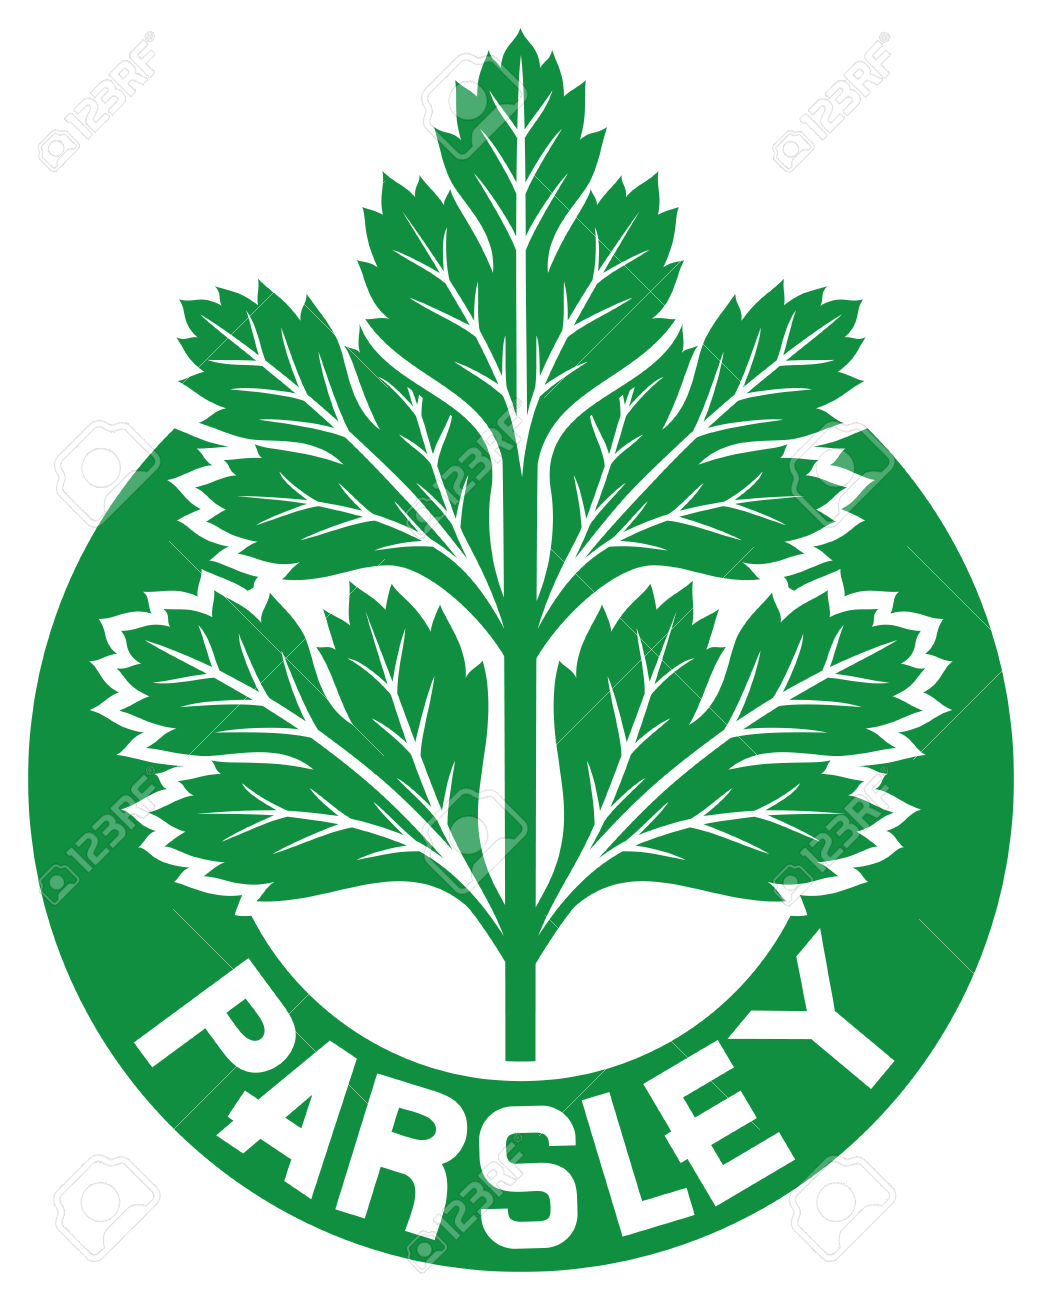 Parsley Label Parsley Symbol, Green Leaves Of Parsley Royalty Free.